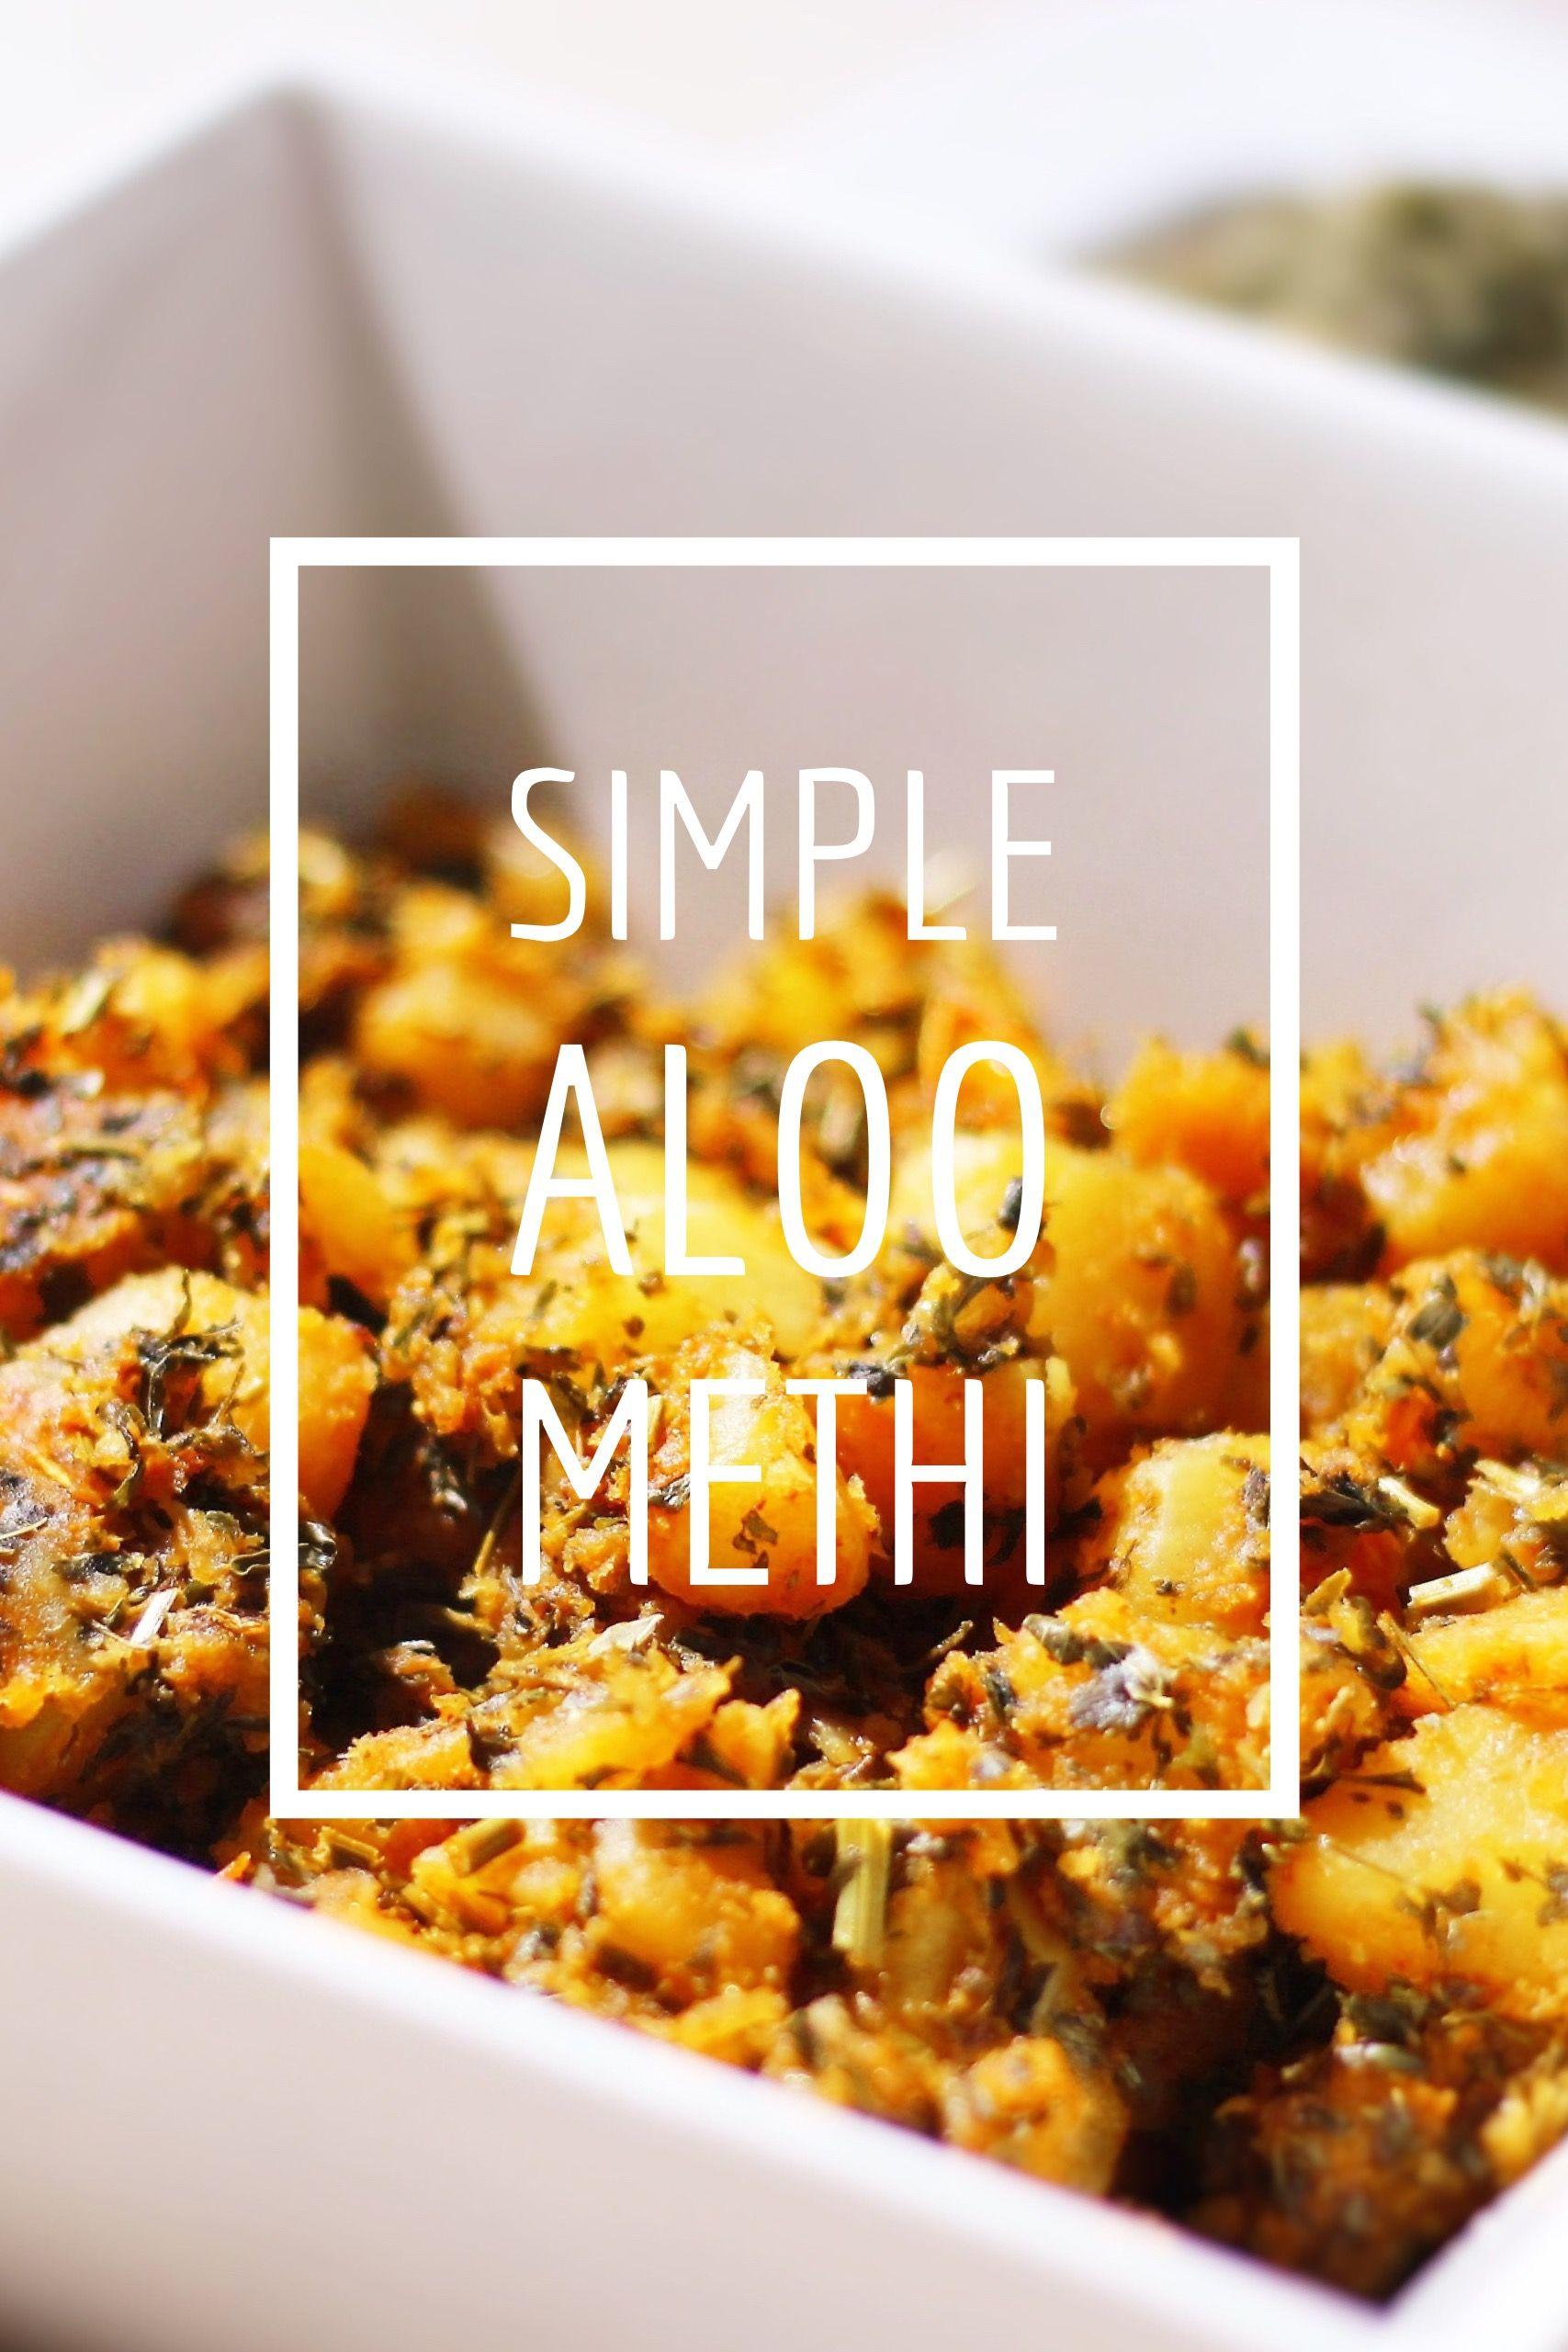 Simple aloo methi recipe in my youtube channel link in my bio indian food recipes simple aloo methi recipe in my youtube channel link in my bio forumfinder Image collections